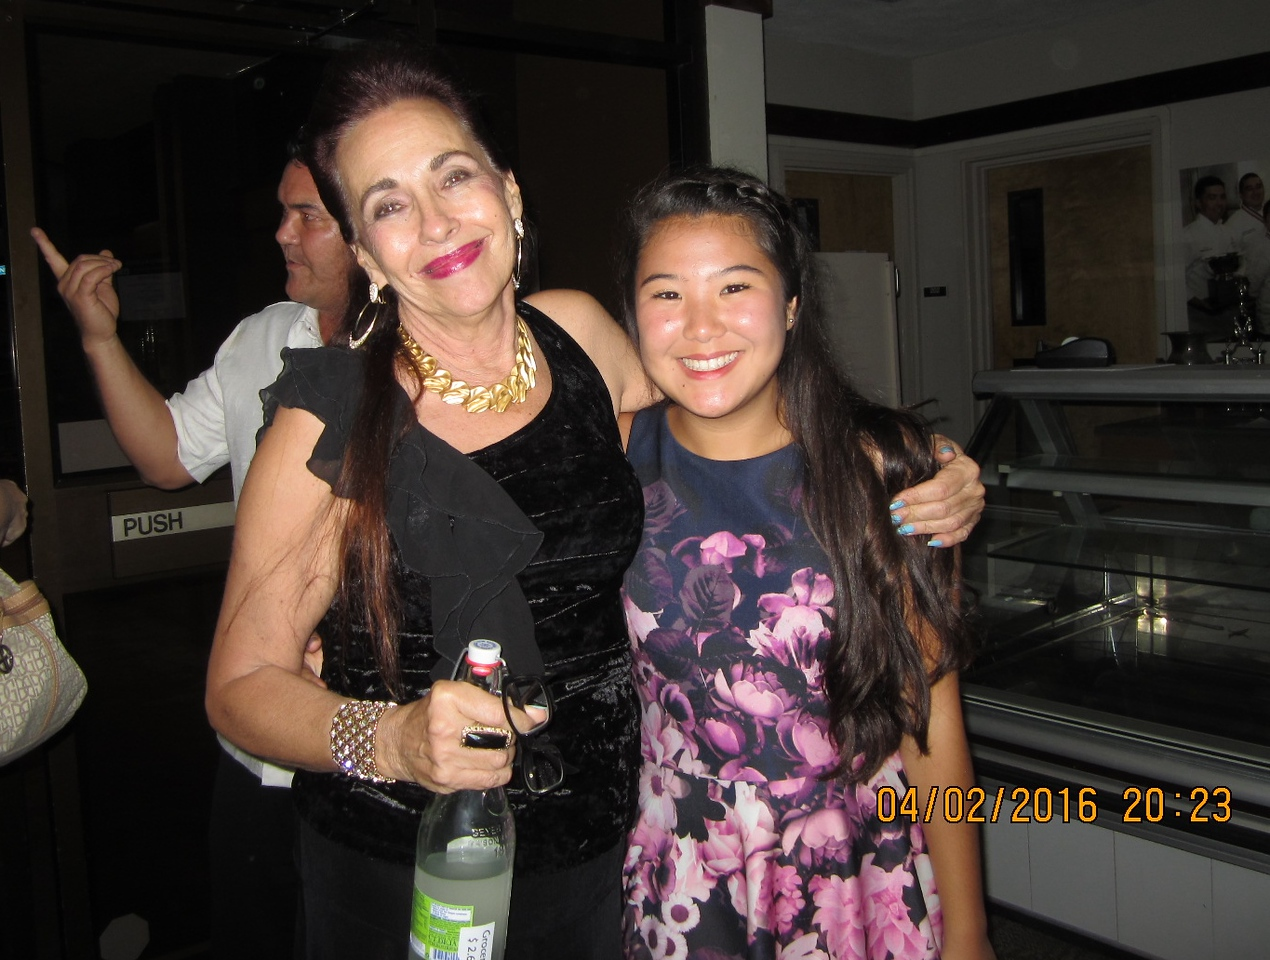 Kathy with the graceful hula dancer.. she learned dance about 11 yrs...